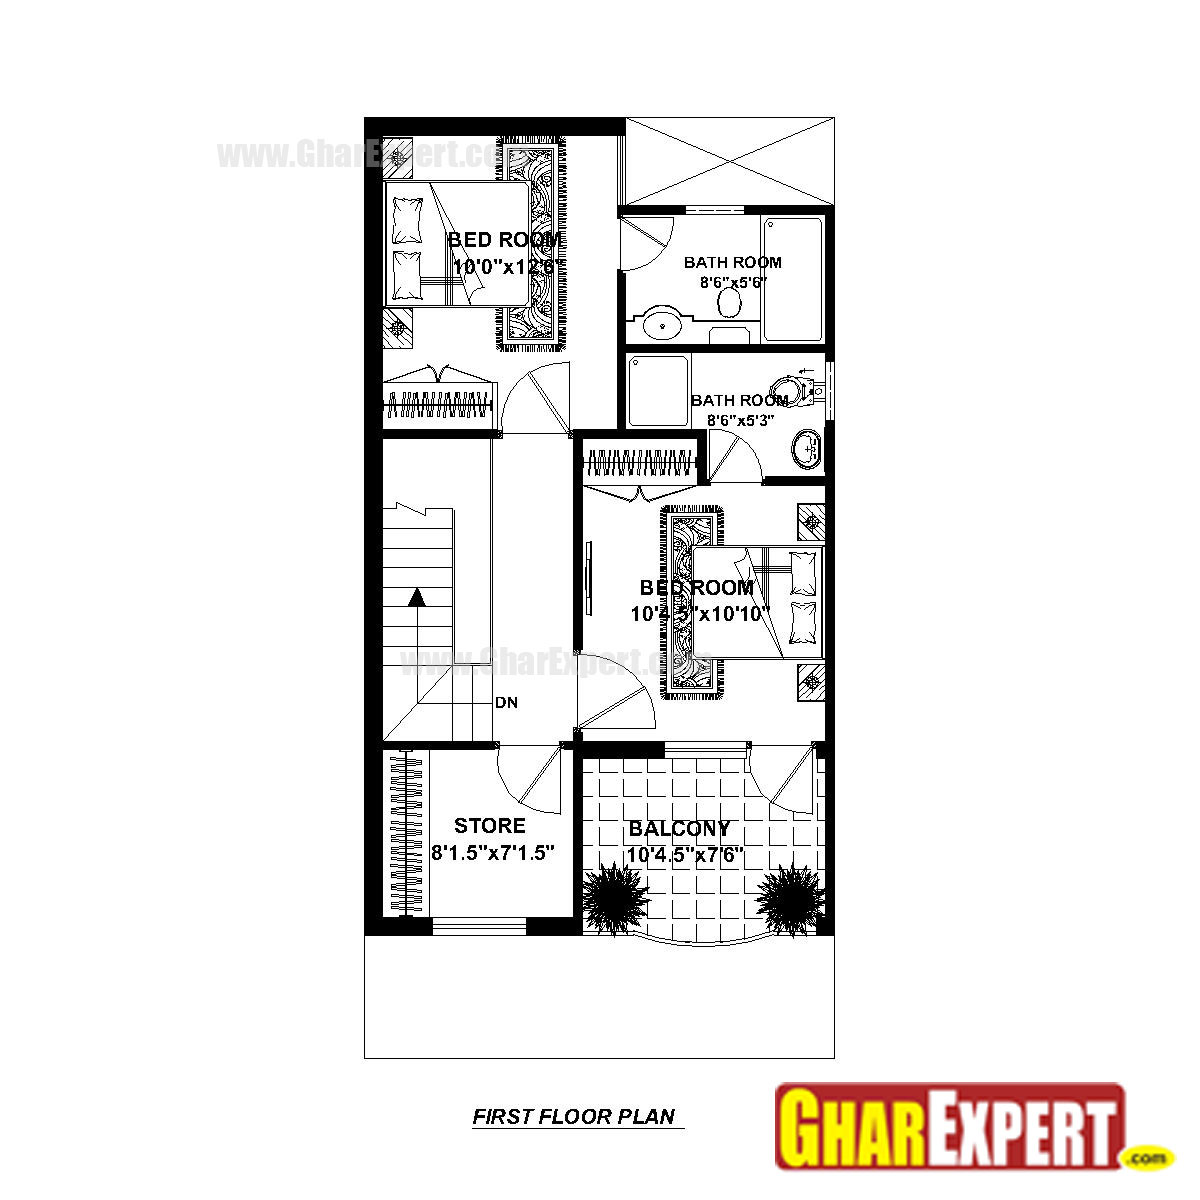 House Plan For 33 Feet By 40 Feet Plot Plot Size 147: House Plan For 20 Feet By 40 Feet Plot (Plot Size 89